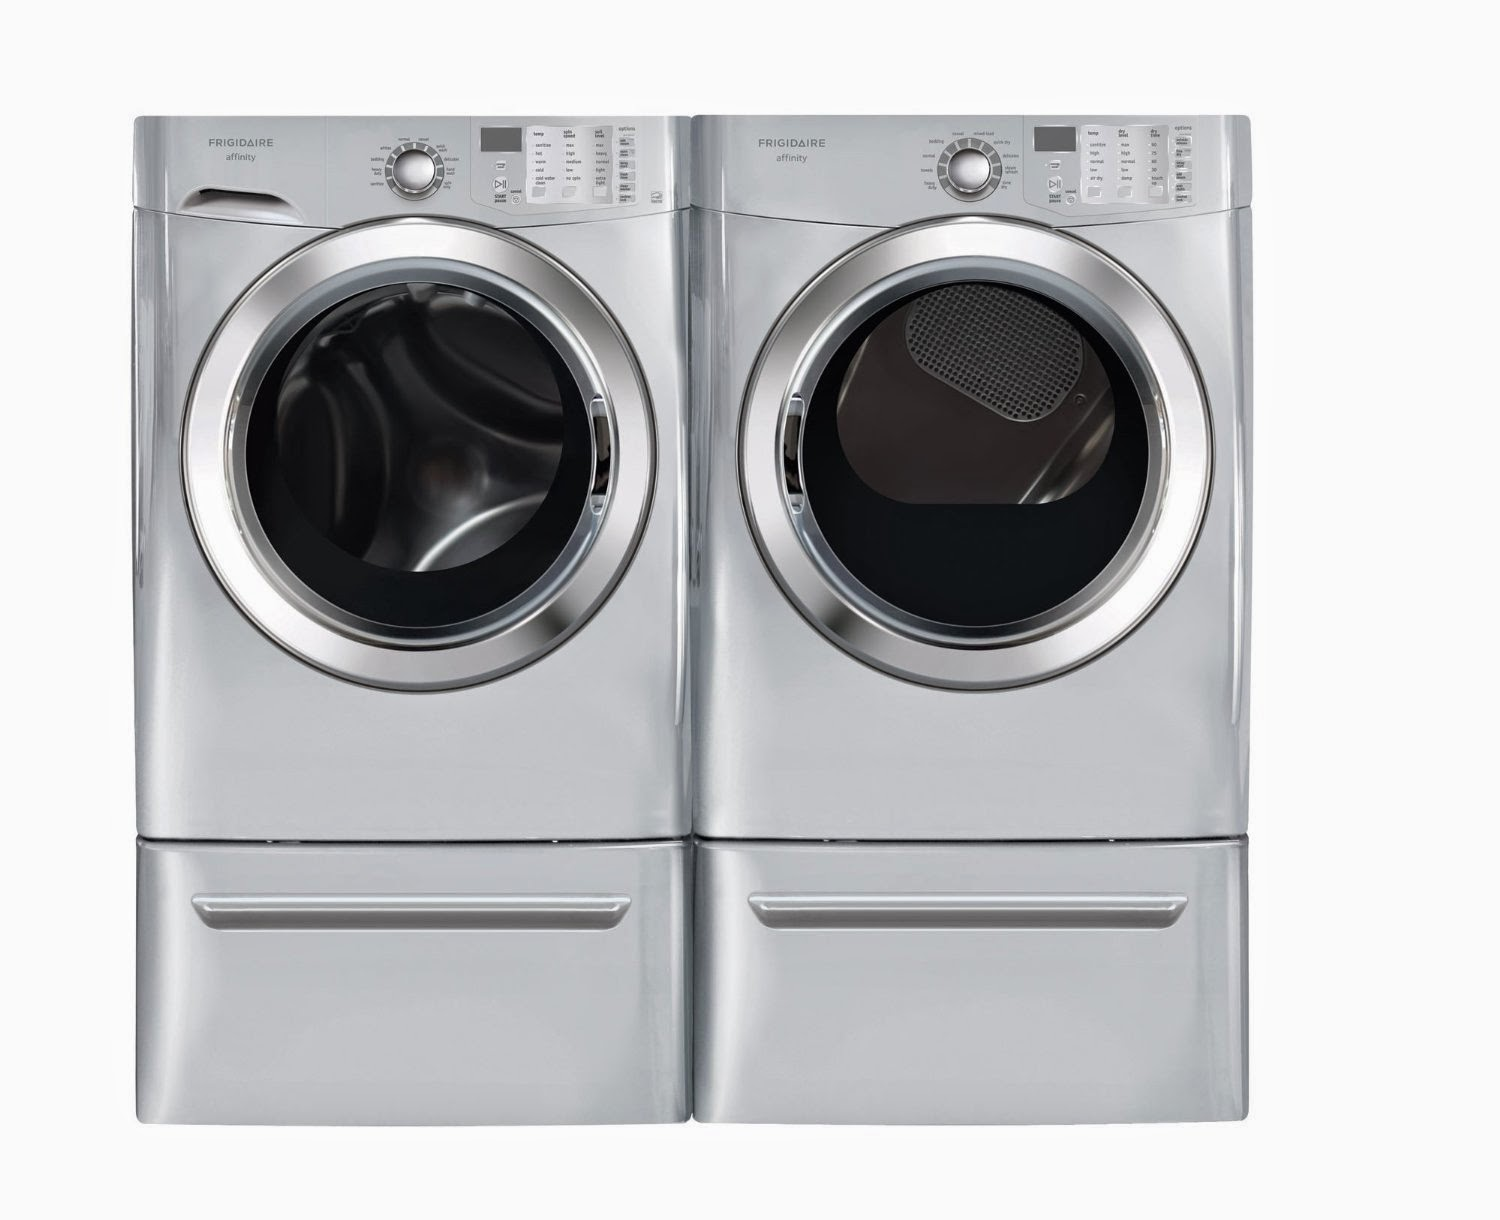 5 top rated top load washers - 5 Top Rated Top Load Washers 38